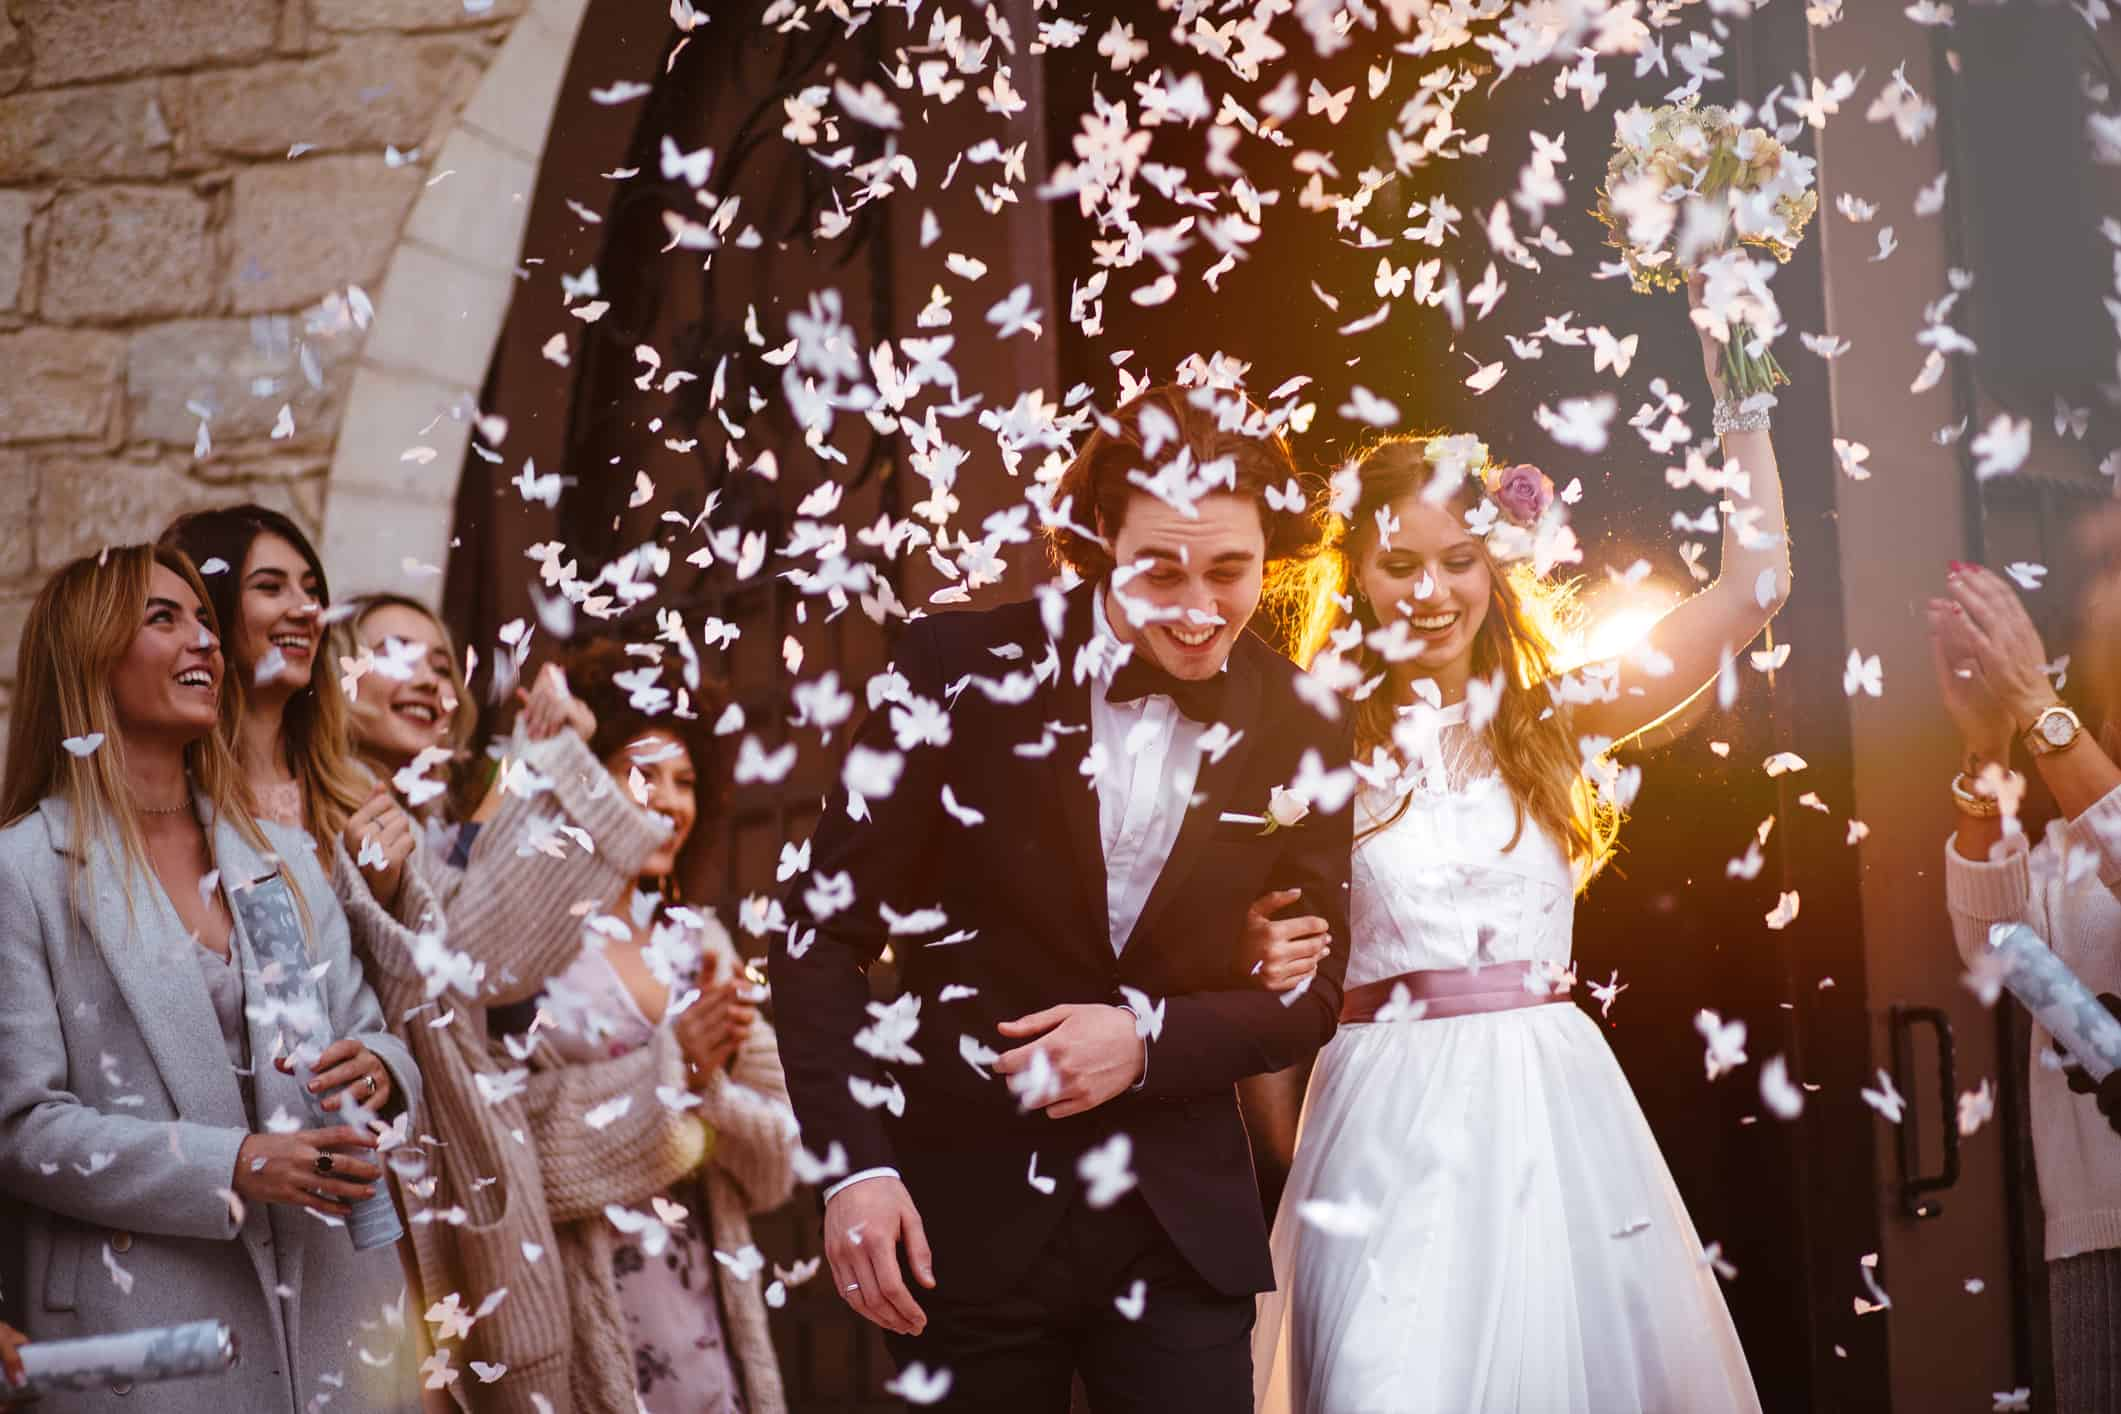 Newlywed husband and wife walking out of church and celebrating marriage with guests throwing confetti on their way to their home